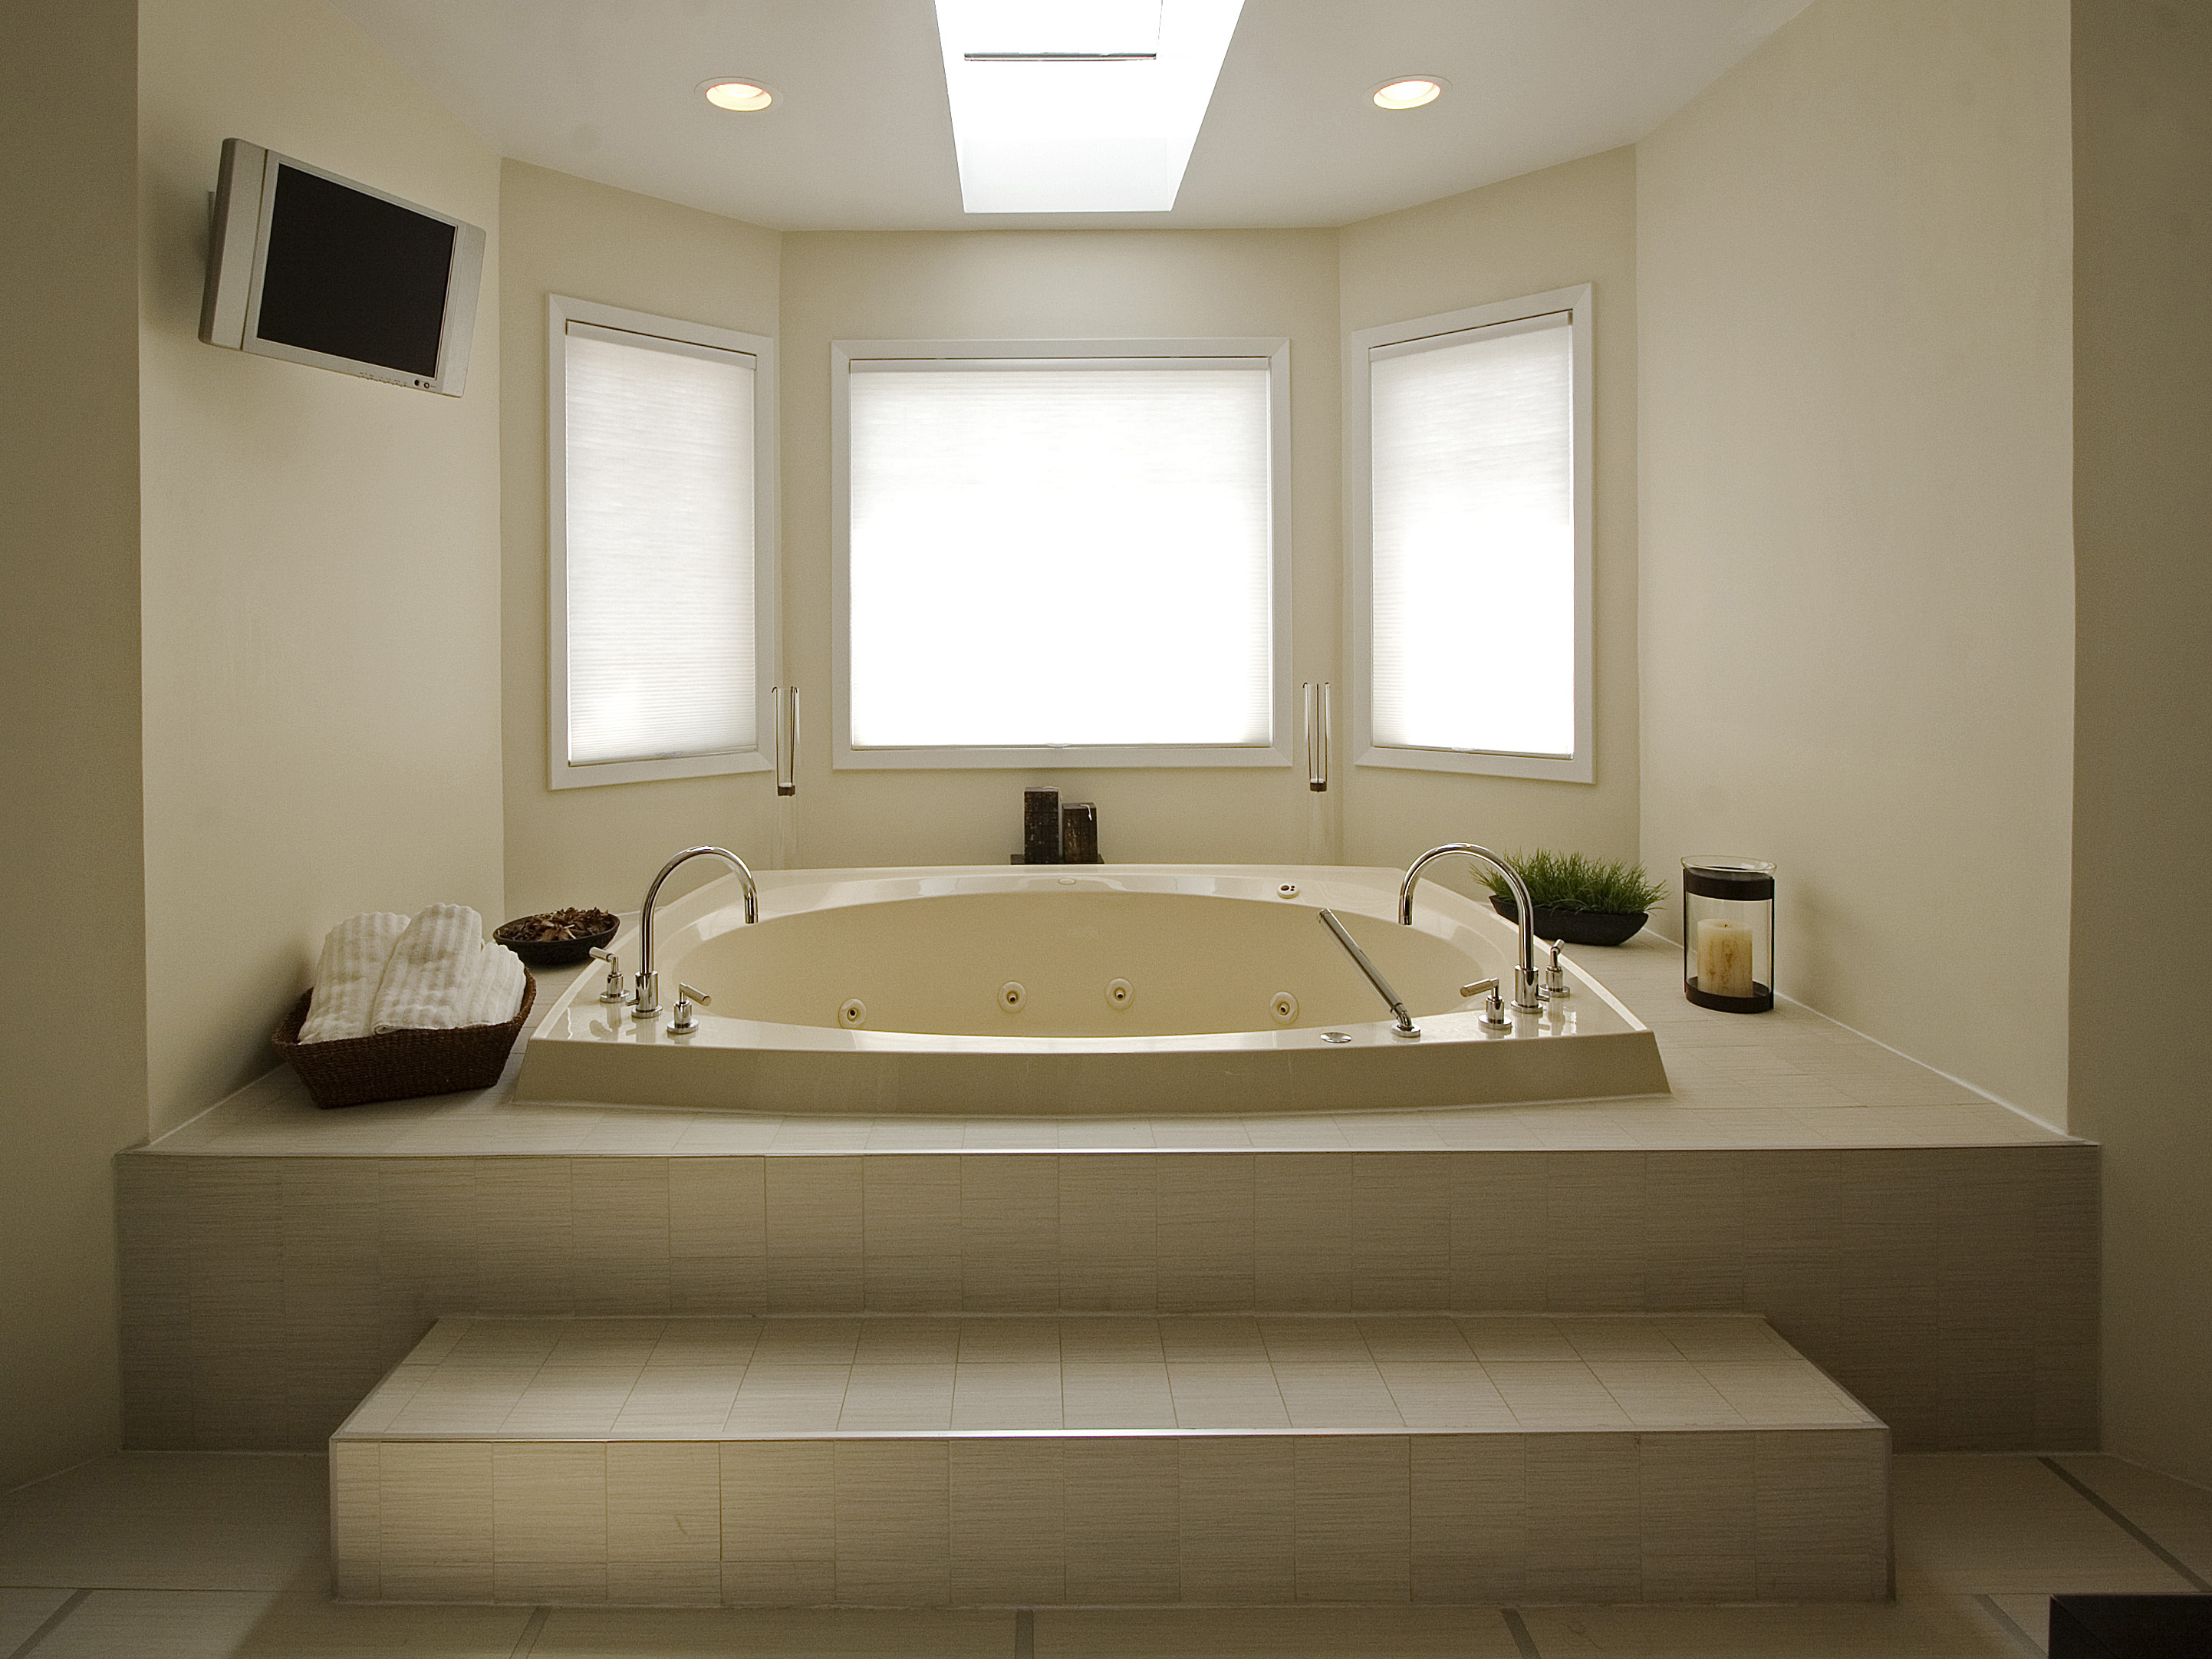 Charming Bathroom Suppliers London Ontario Tiny Mobile Home Bathroom Remodeling Ideas Flat Fiberglass Bathtub Repair Kit Uk Memento Bathroom Scene Young Jacuzzi Whirlpool Bathtub Reviews YellowSmall Bathroom Vanities Vessel Sink Modern Bathtub Designs: Pictures, Ideas \u0026amp; Tips From HGTV | HGTV